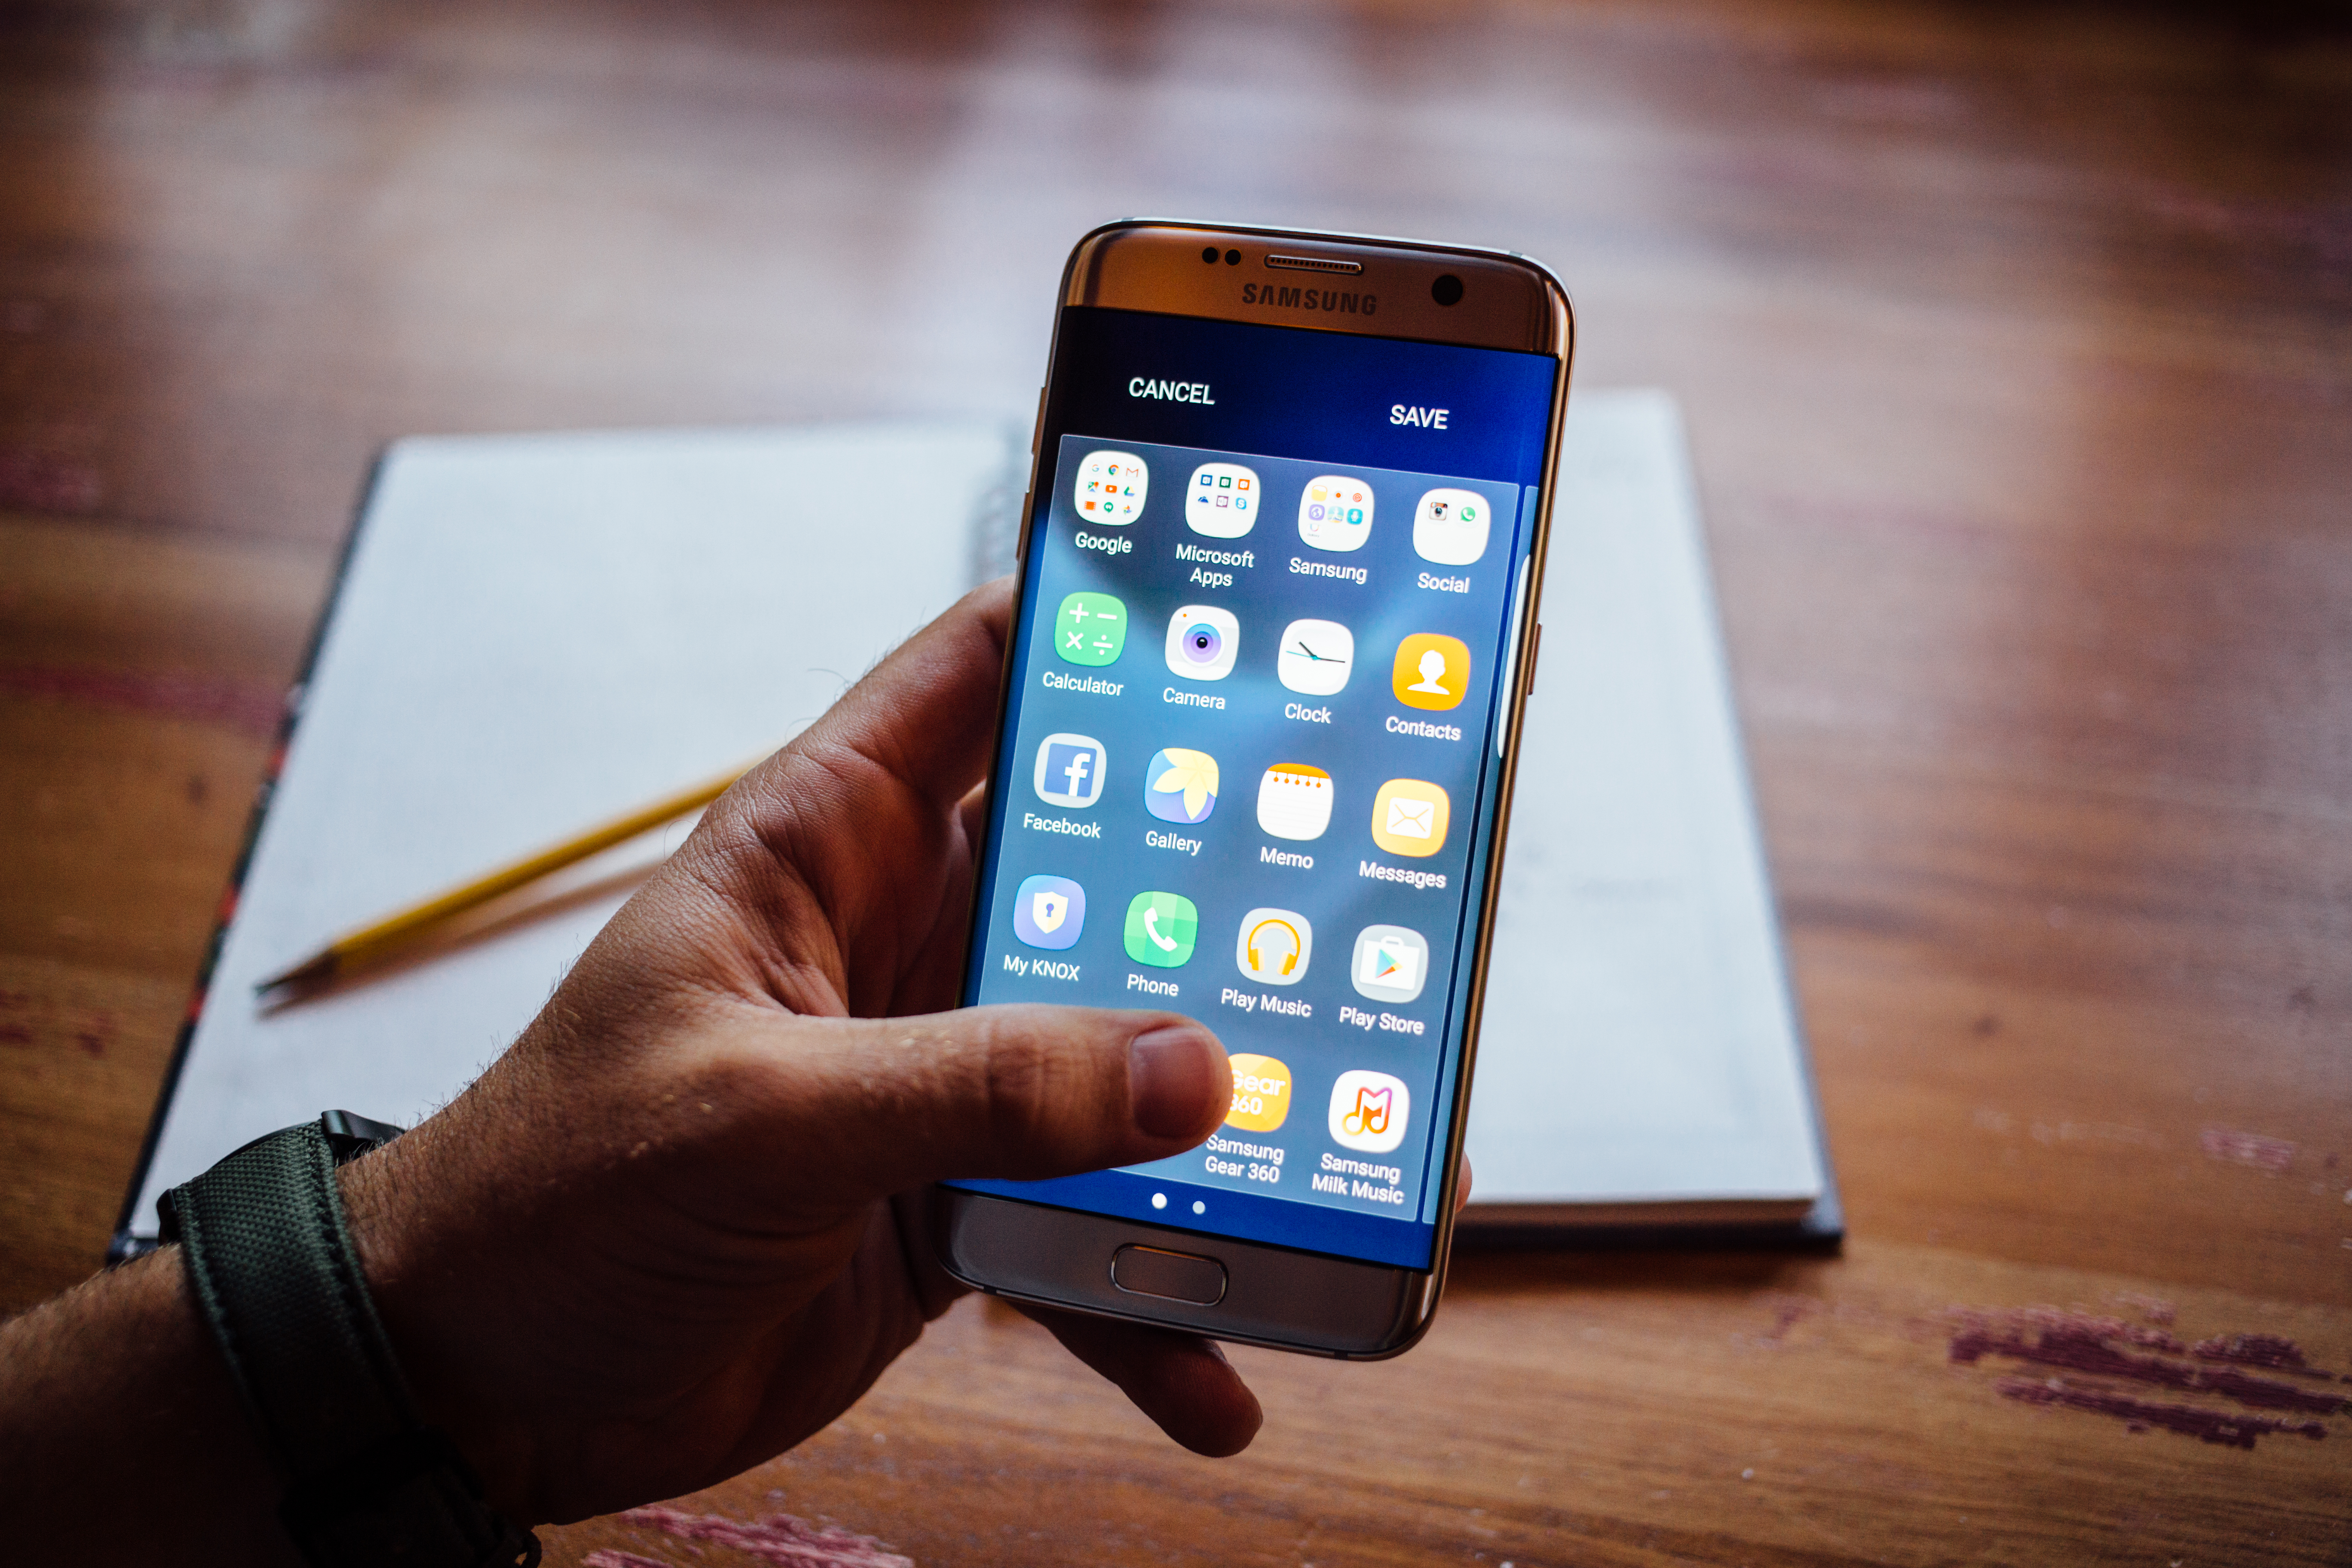 Galaxy note 7 official image gallery feast your eyes on samsung - Galaxy Note 7 Official Image Gallery Feast Your Eyes On Samsung 74